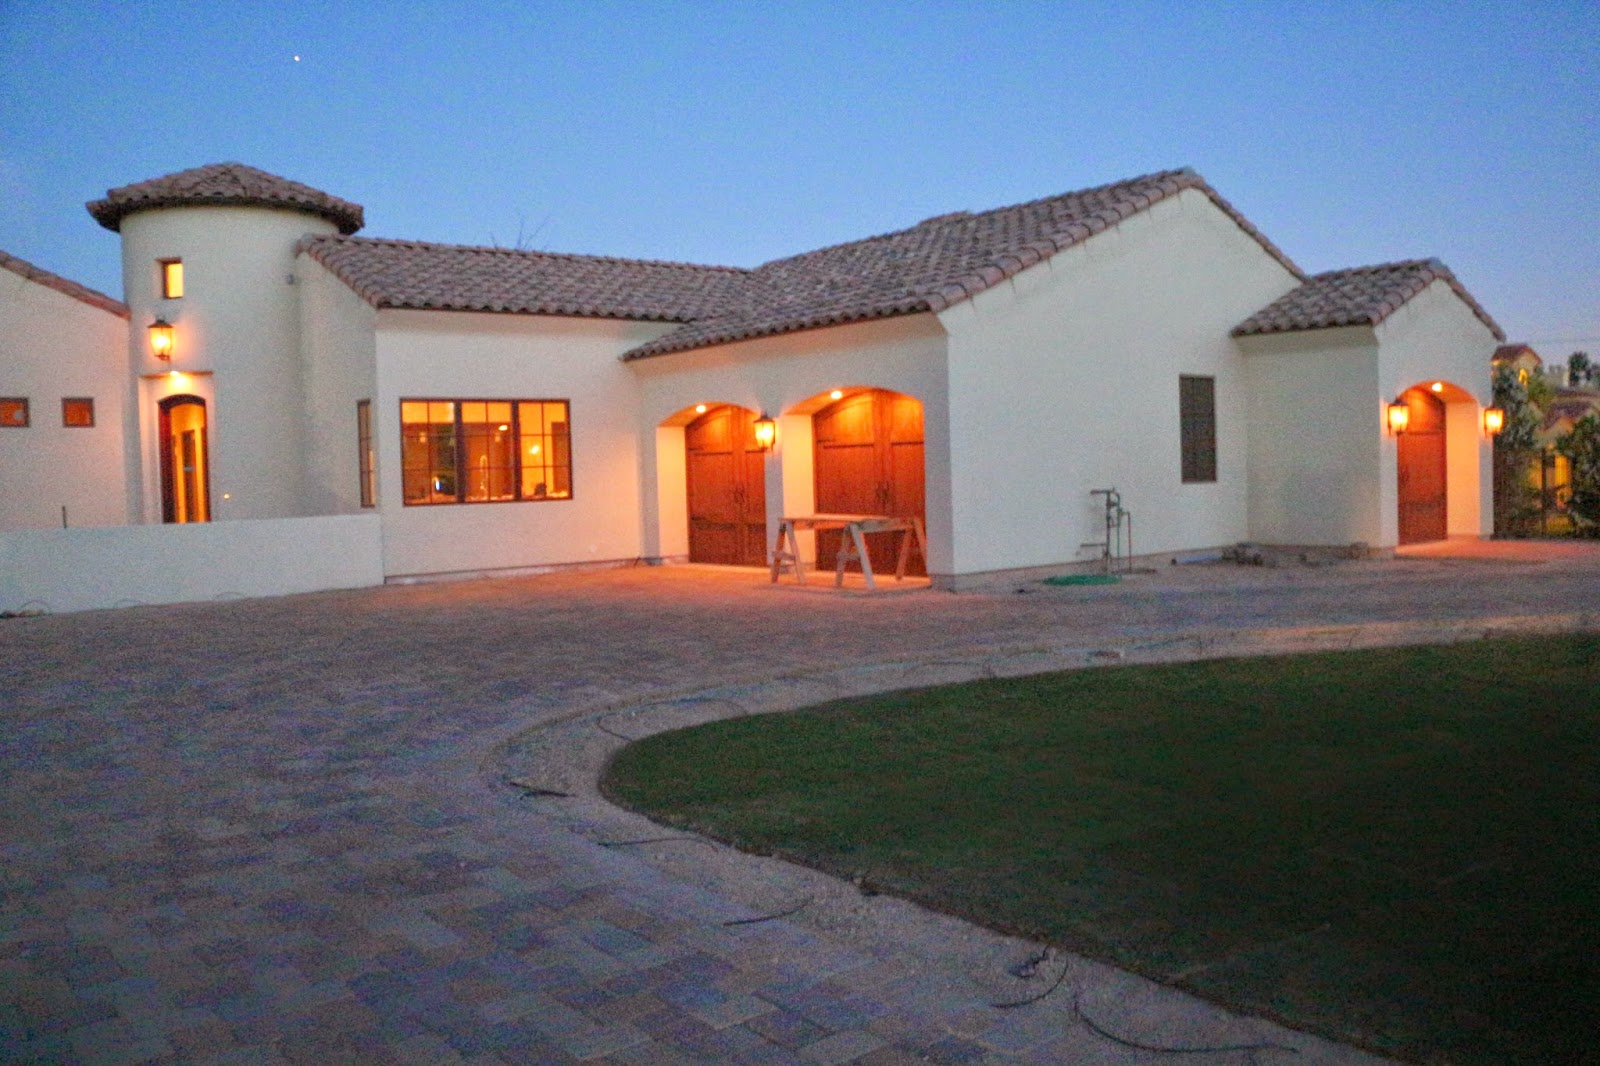 paver driveway, wood garage doors, arched garage door opening, spanish colonial house